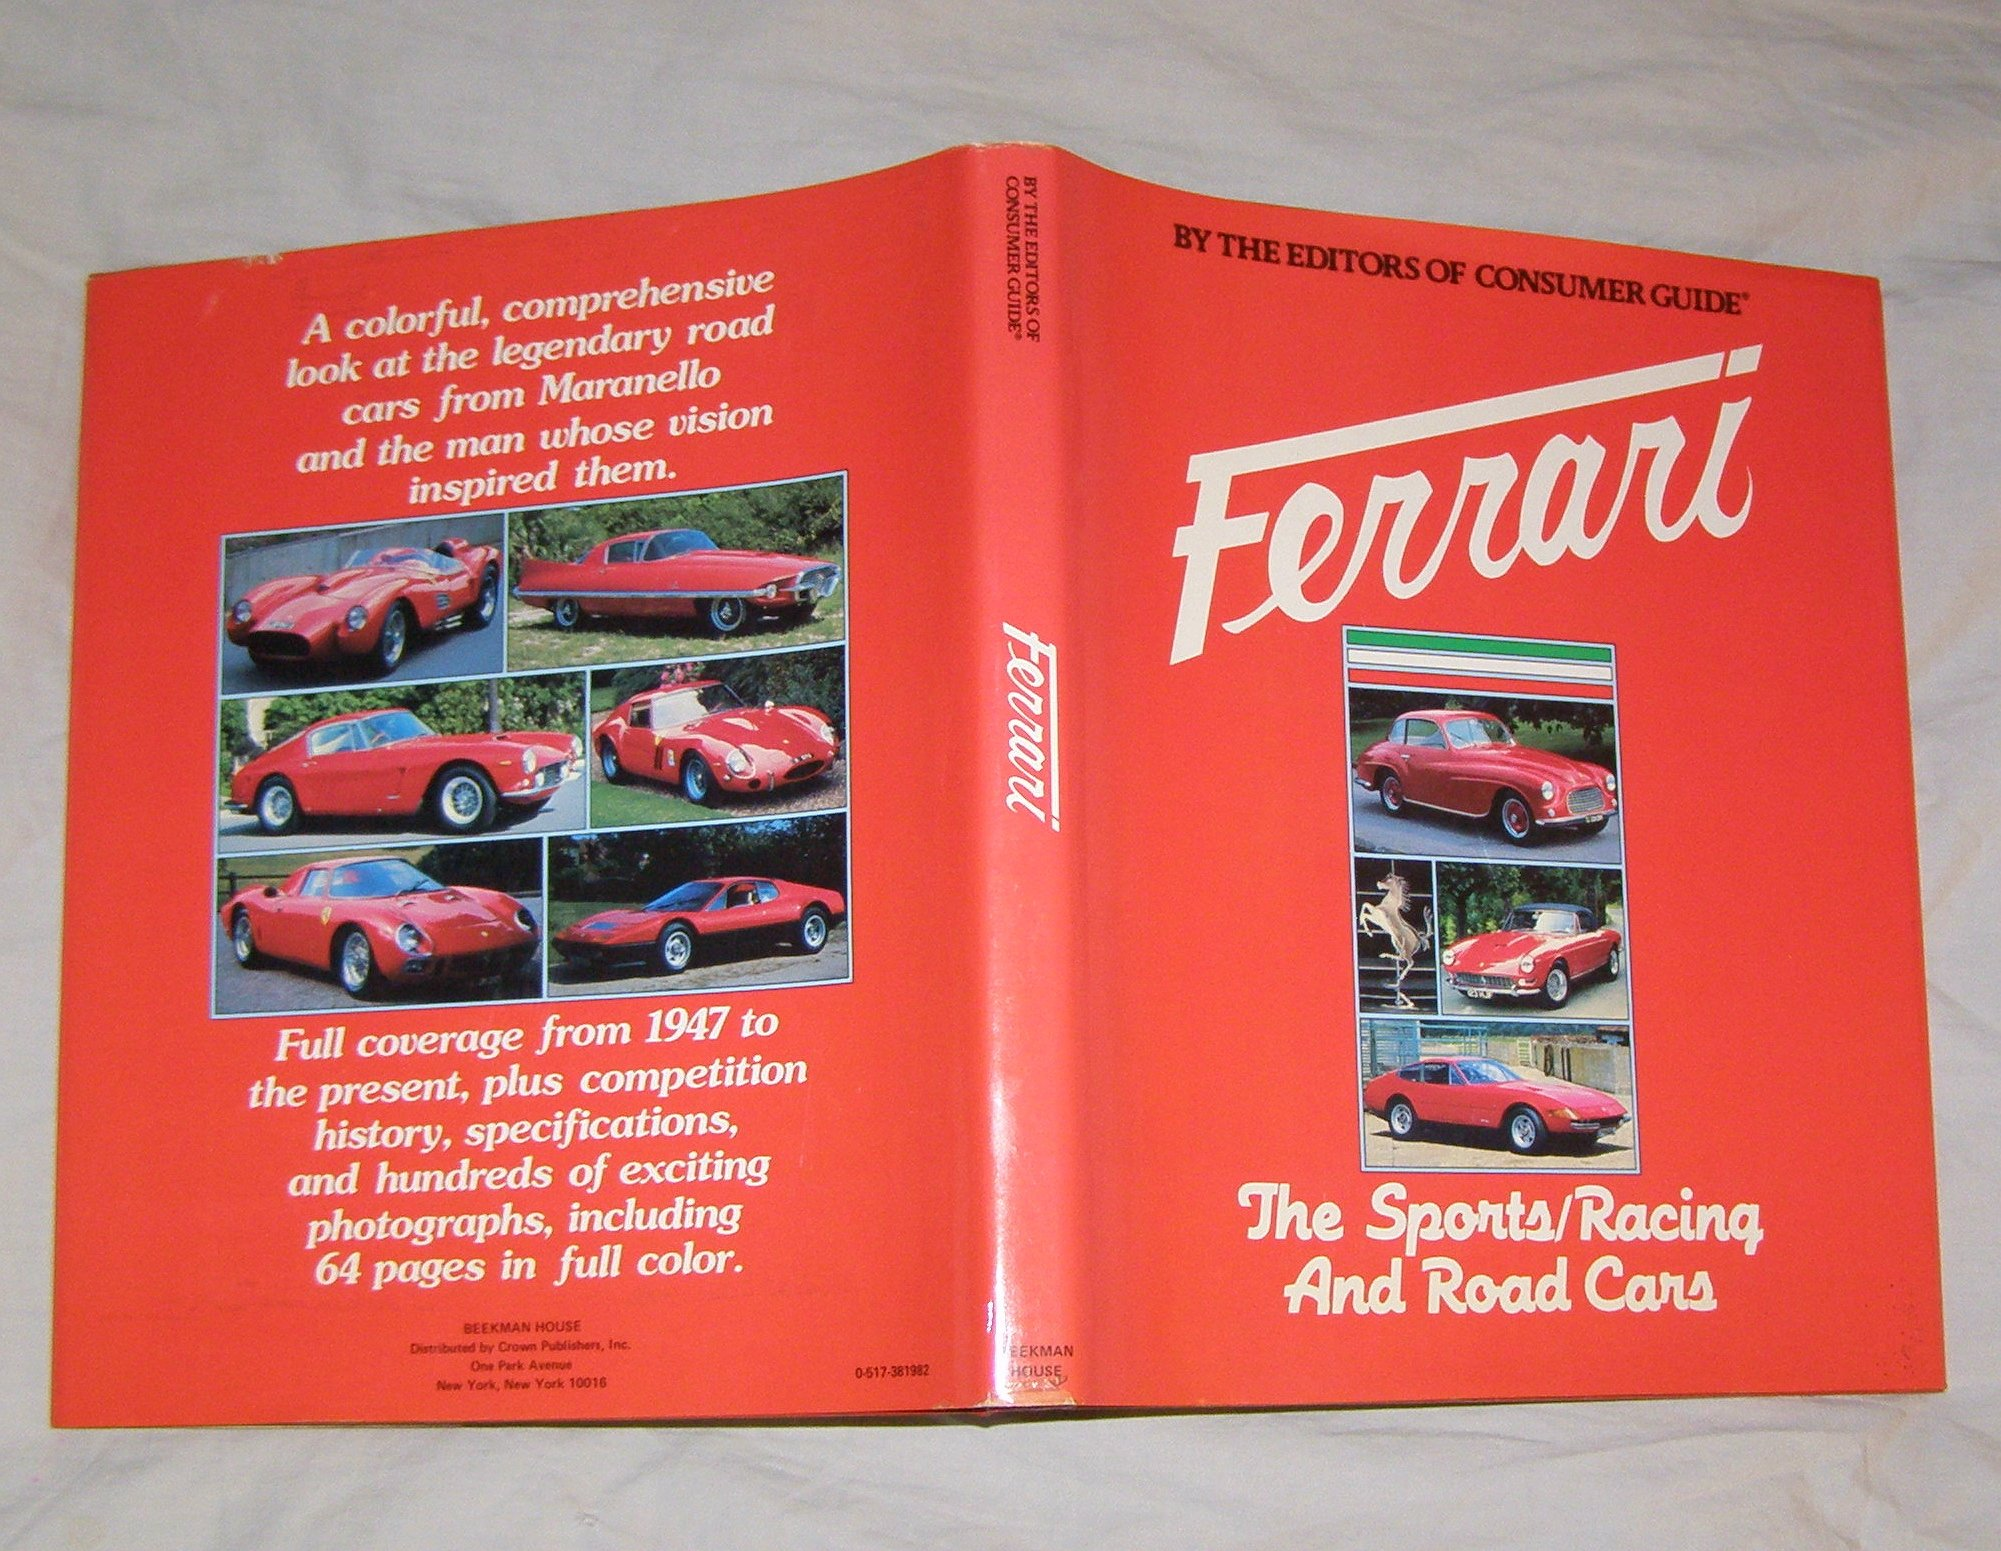 Ferrari : The Sports/Racing and Road Cars